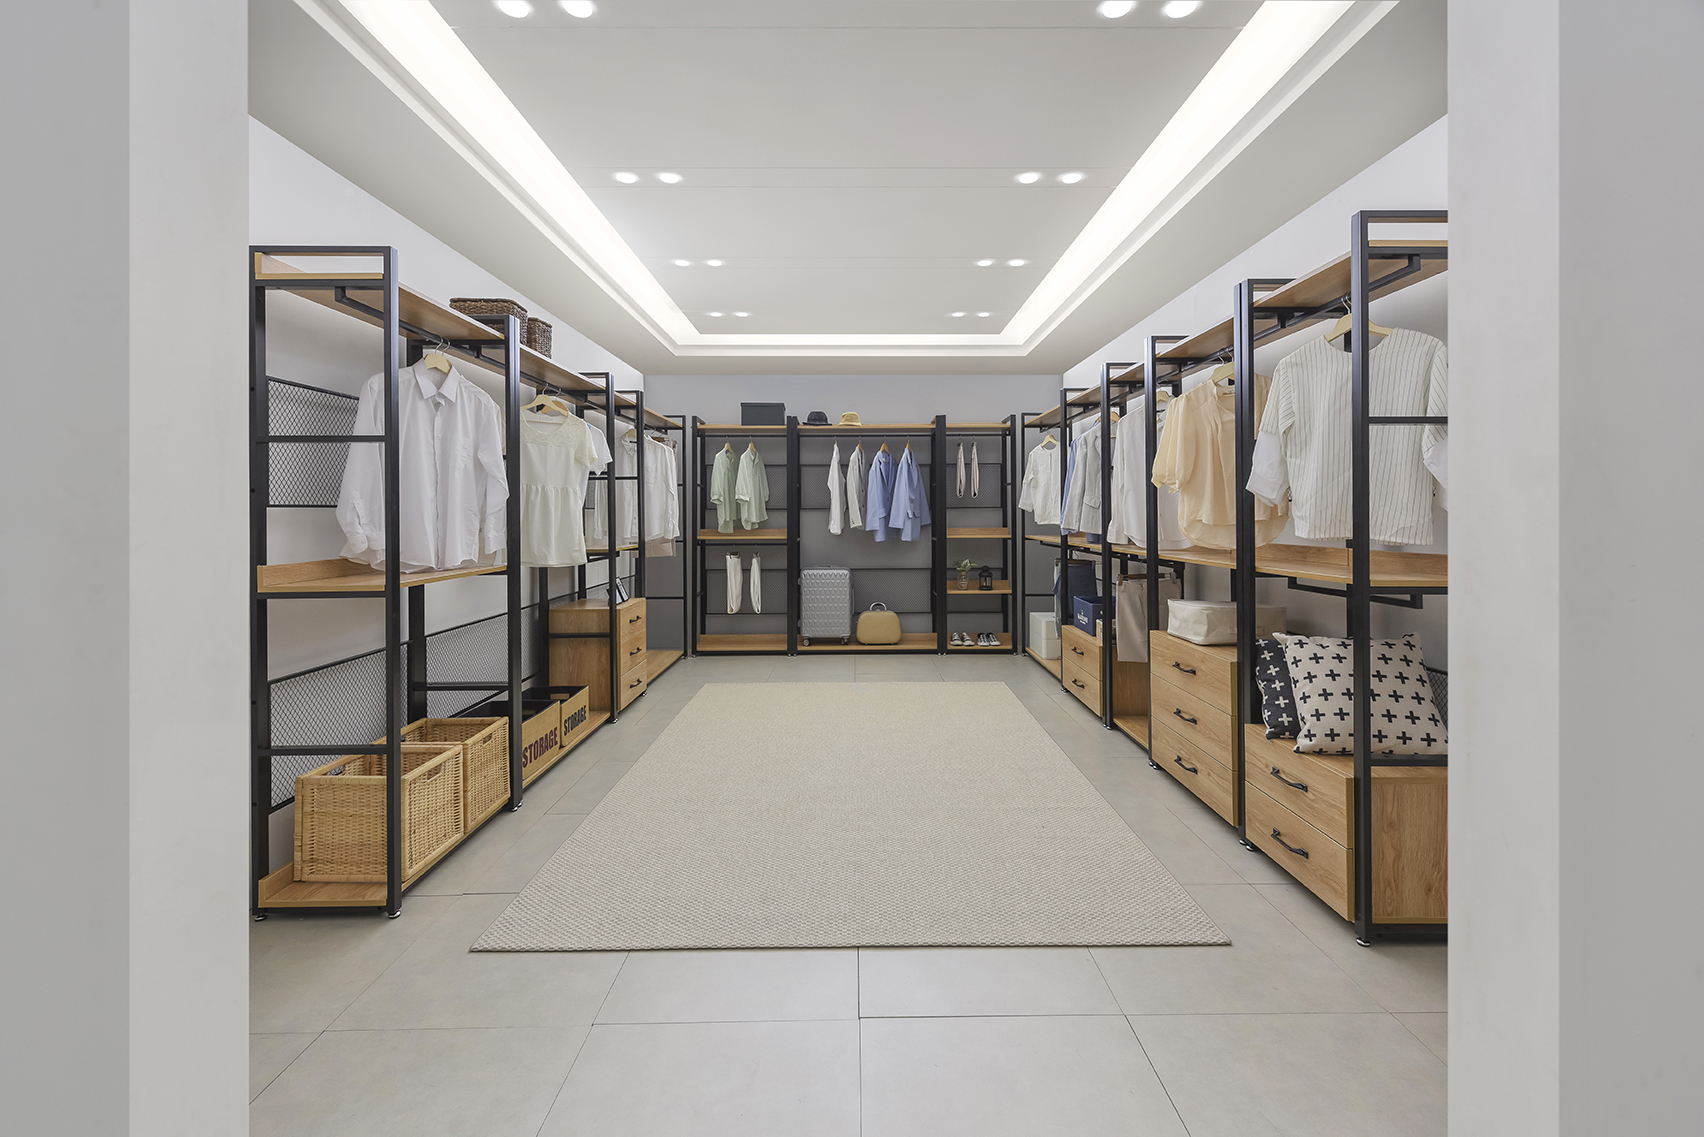 A stretch of U-shape Walk-in wardrobe built with Mila Open Modular style Wood and steel Wardrobe by Grey and Sanders